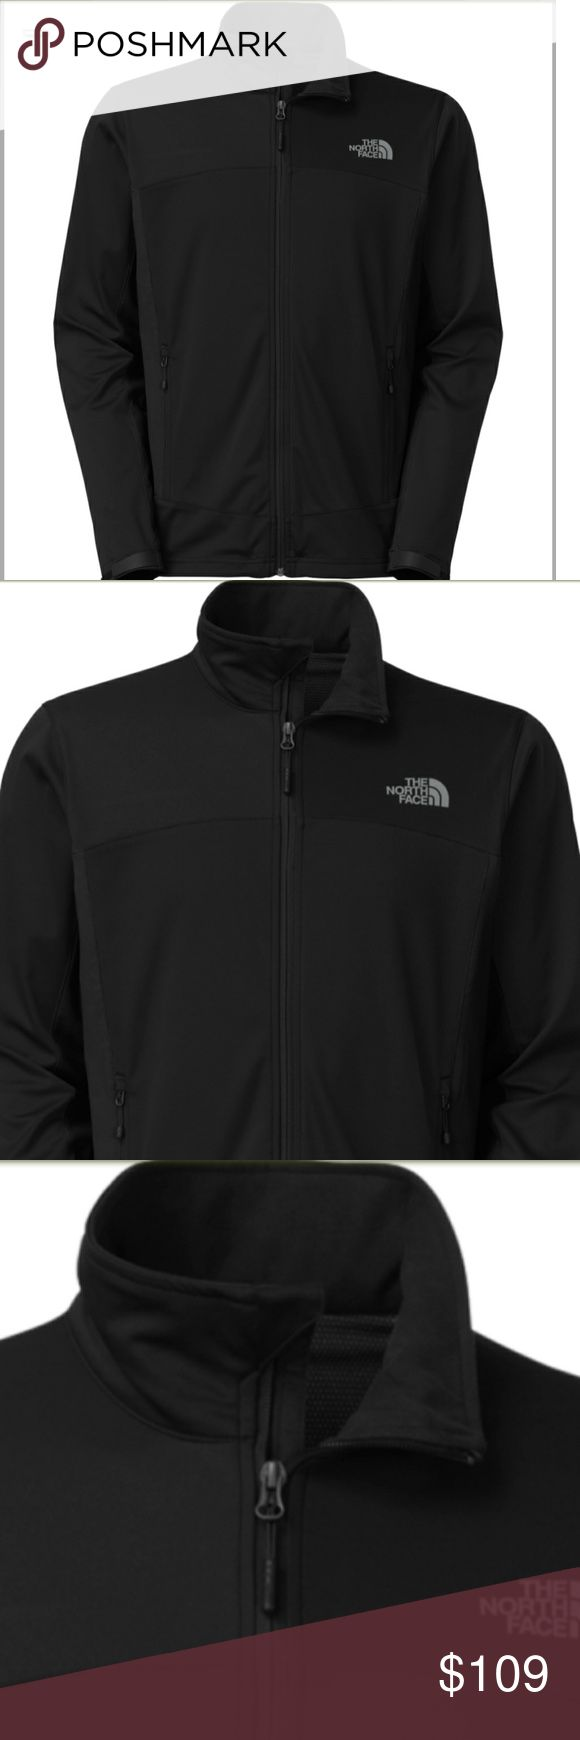 The North Face men's large soft shell jacket Very nice, NWT never worn. Retail $149 Color is TNF Black High performance soft shell  * GORE WINDSTOPPER windproof fabric construction blocks gusts * Strategically placed highly wind-resistant stretch panels for mobility * Wind-permeability rating is less than 20 CFM to seal in warmth * Durable water-repellent finish sheds moisture with ease The North Face Jackets & Coats Performance Jackets